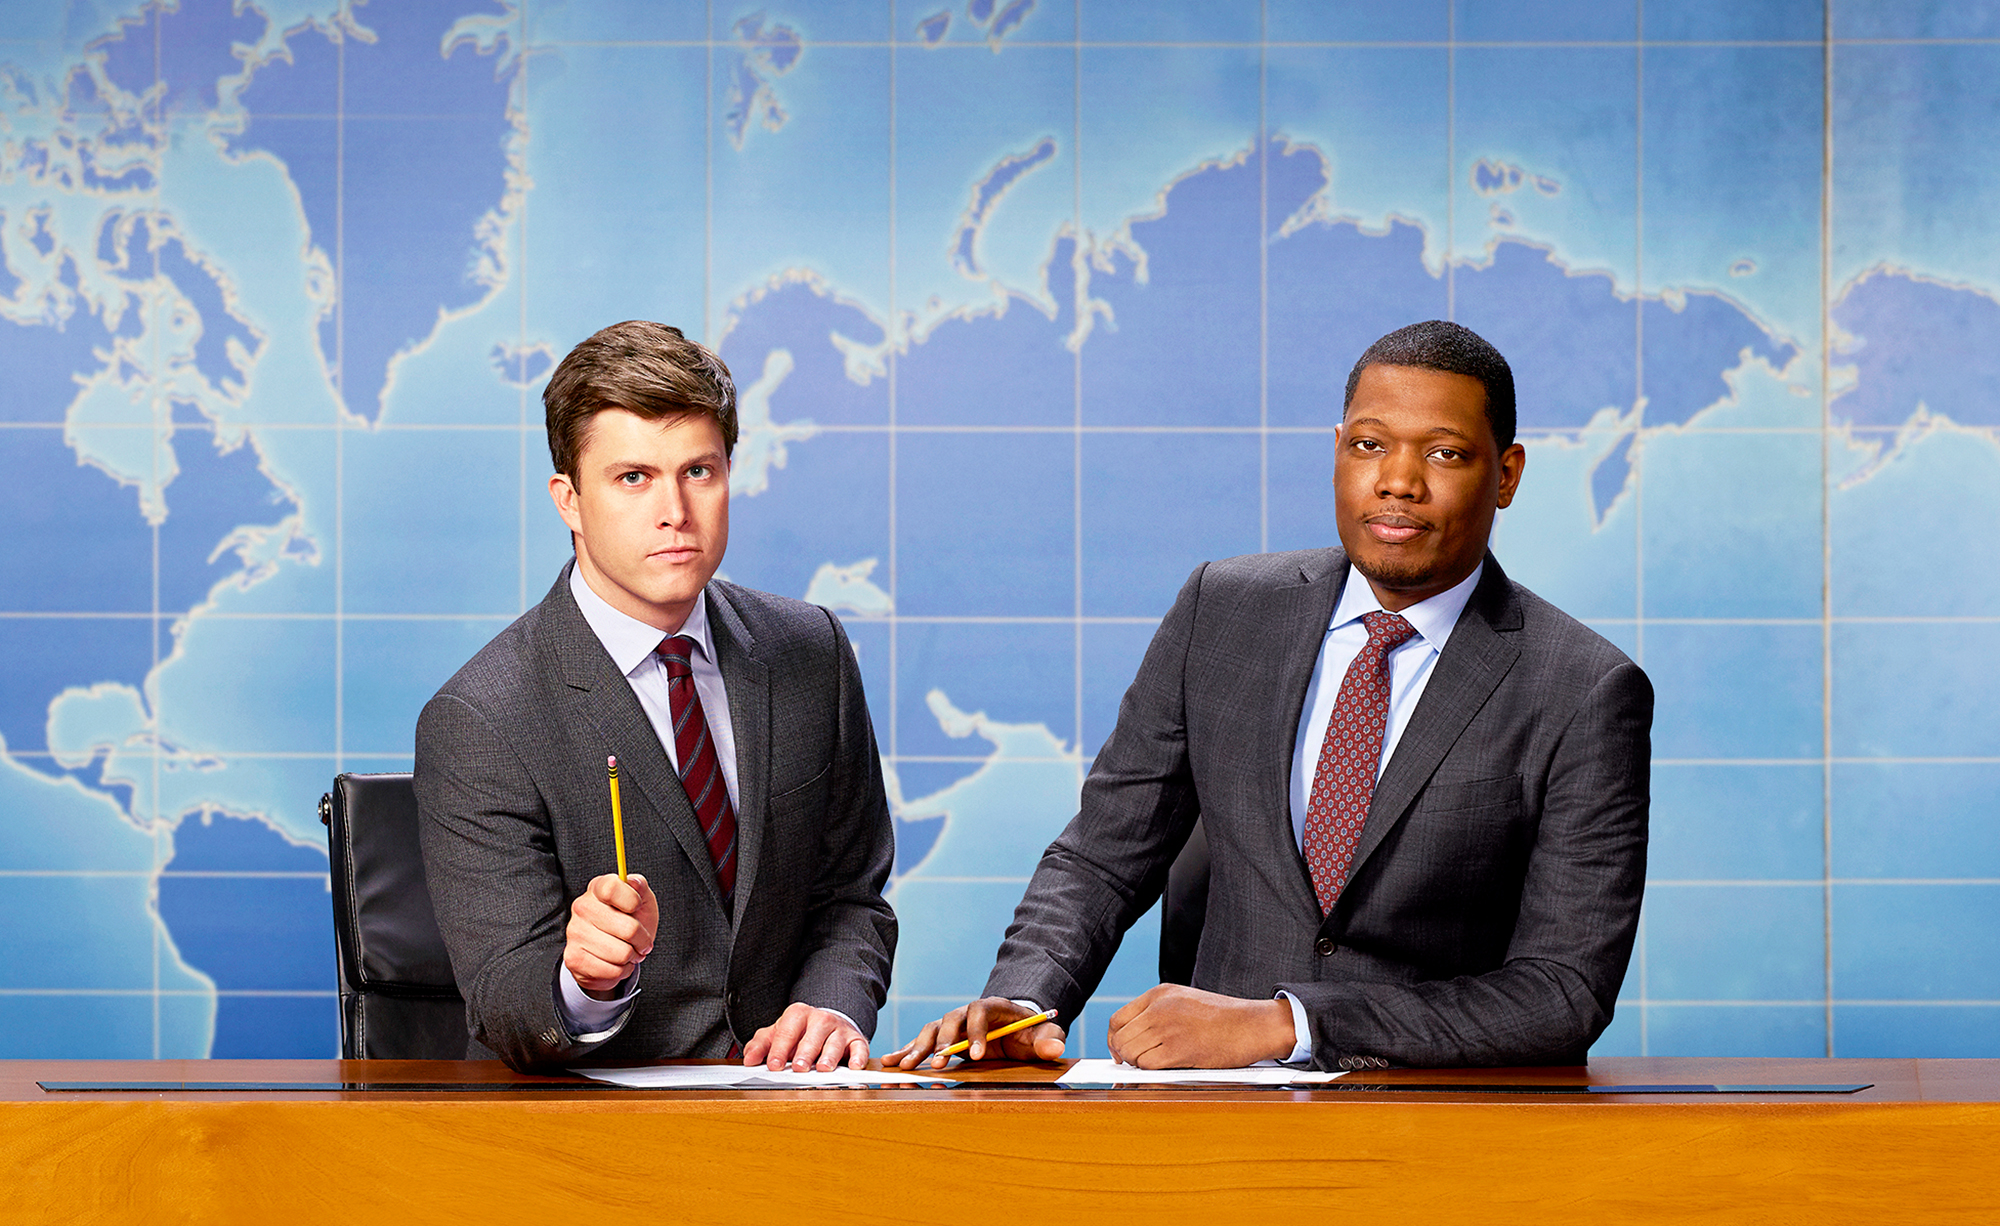 Emmys: SNL's Colin Jost, Michael Che to Host 70th Annual Ceremony